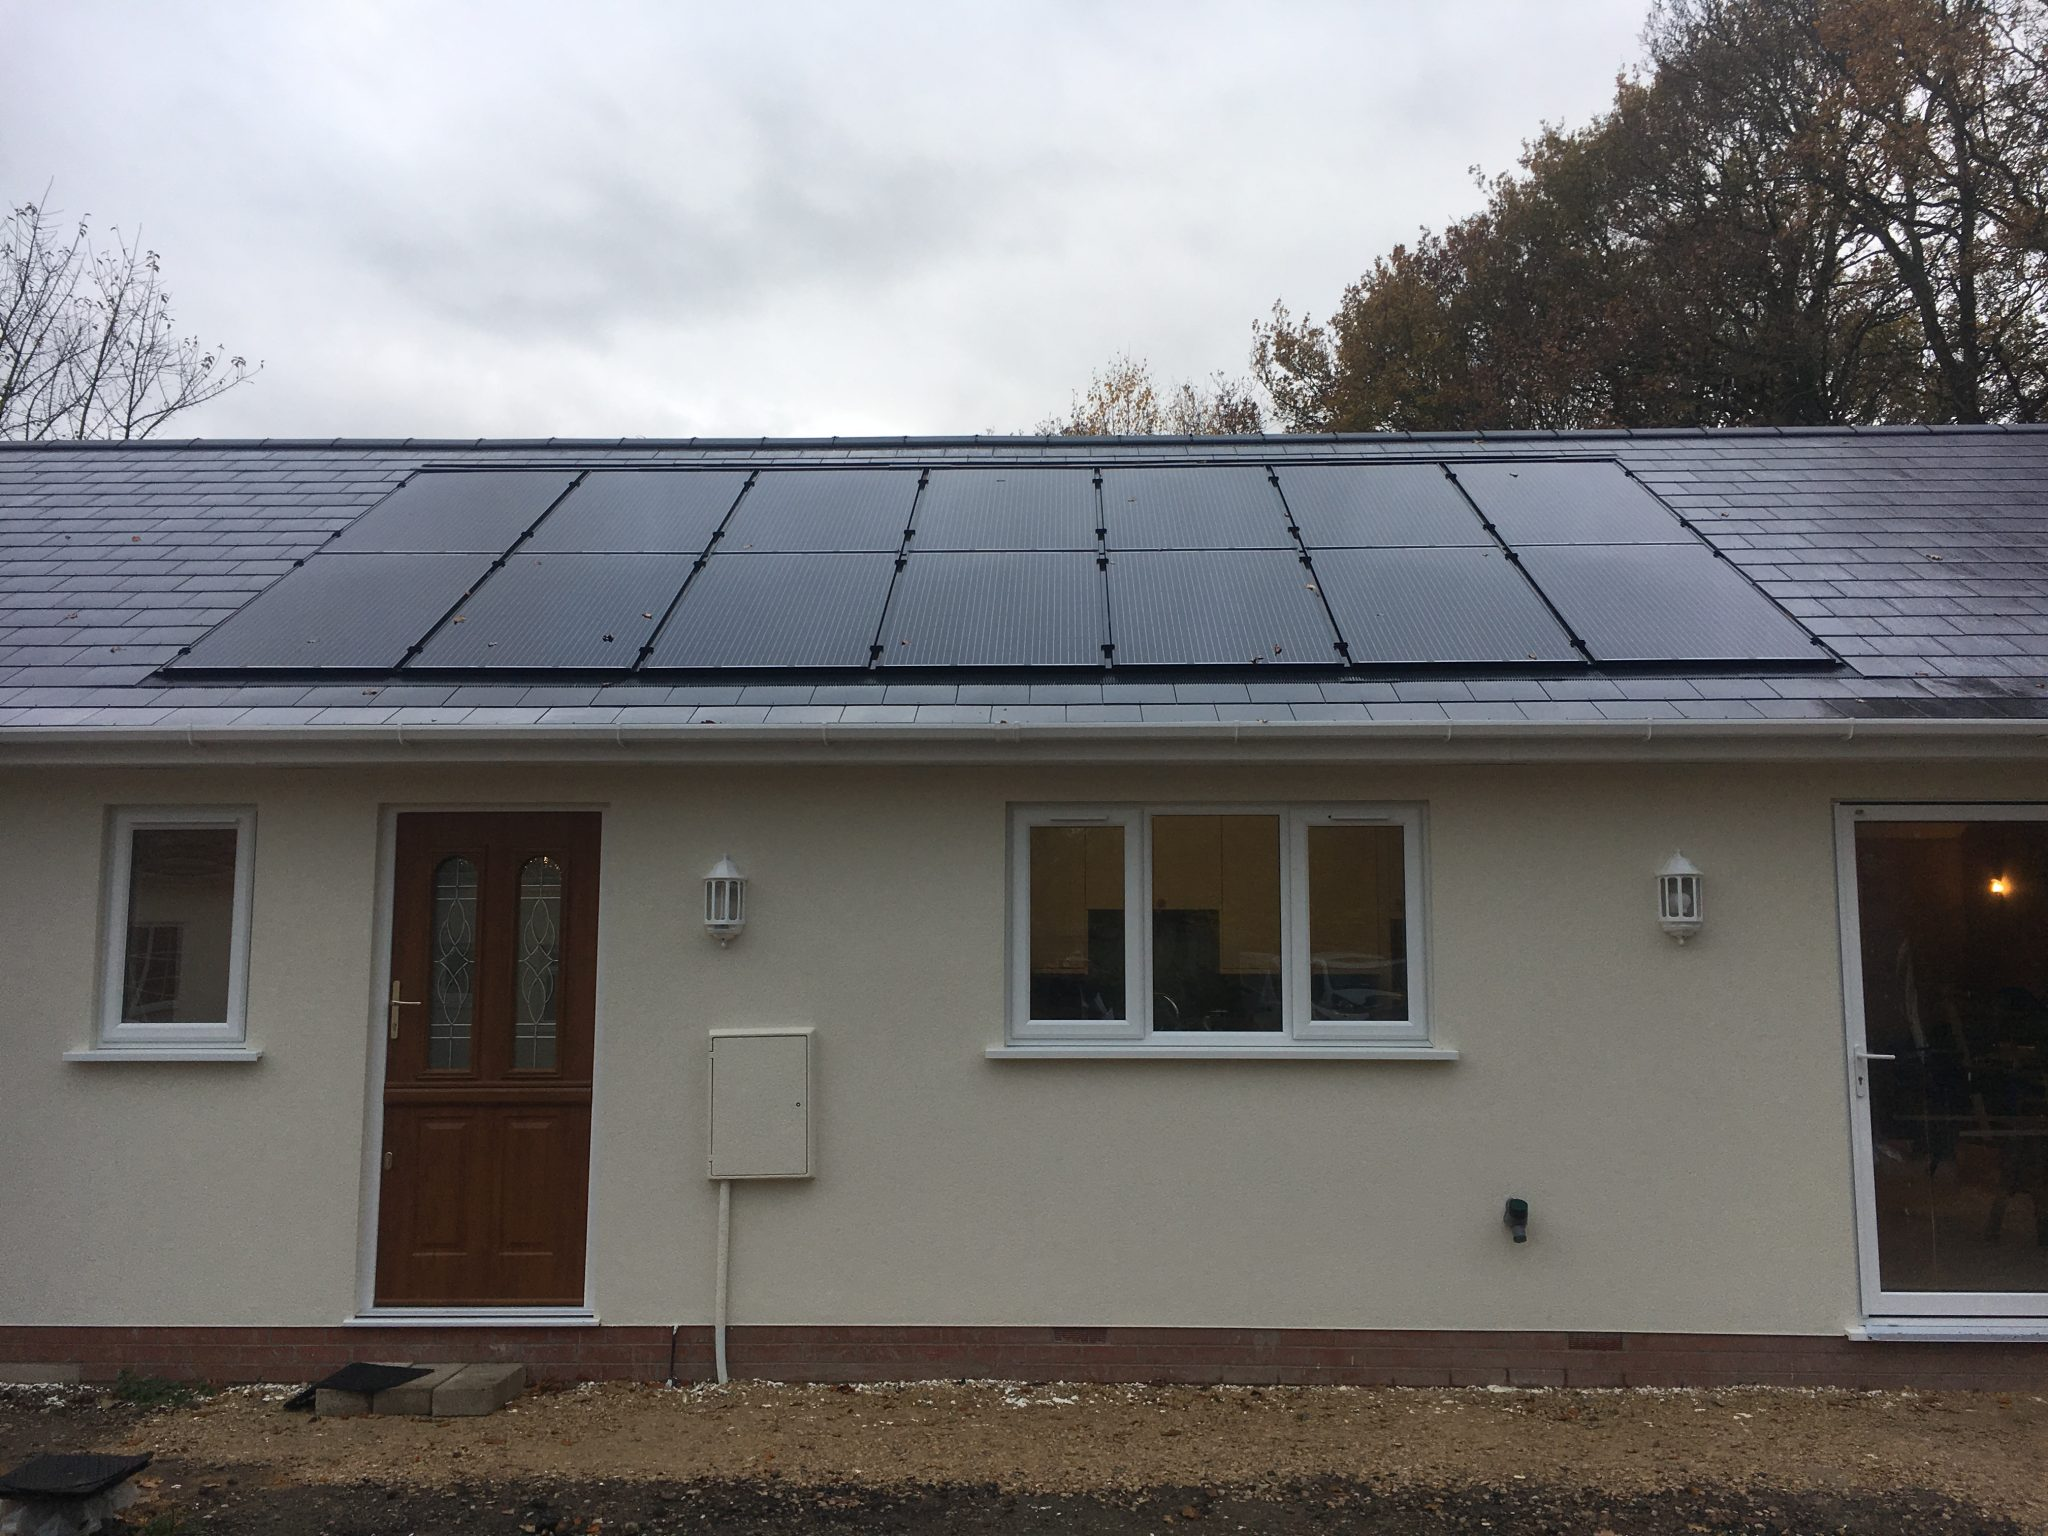 Air Source Heat Pump & Solar PV – New Build, Skellingthorpe